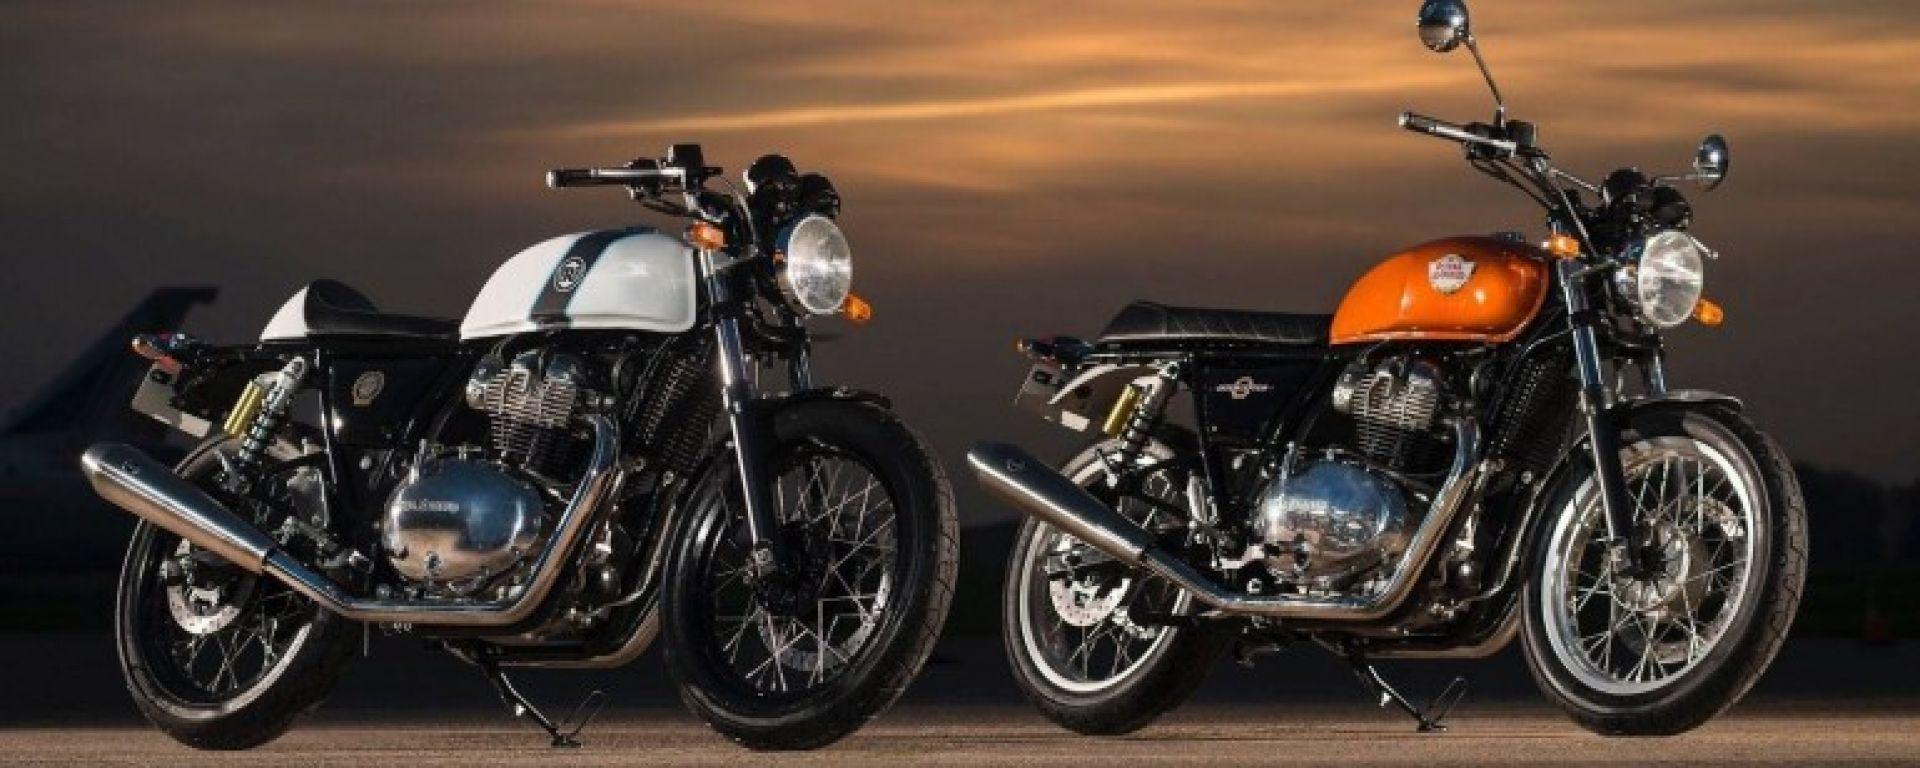 Royal Enfield: slitta il debutto di Continental e Interceptor